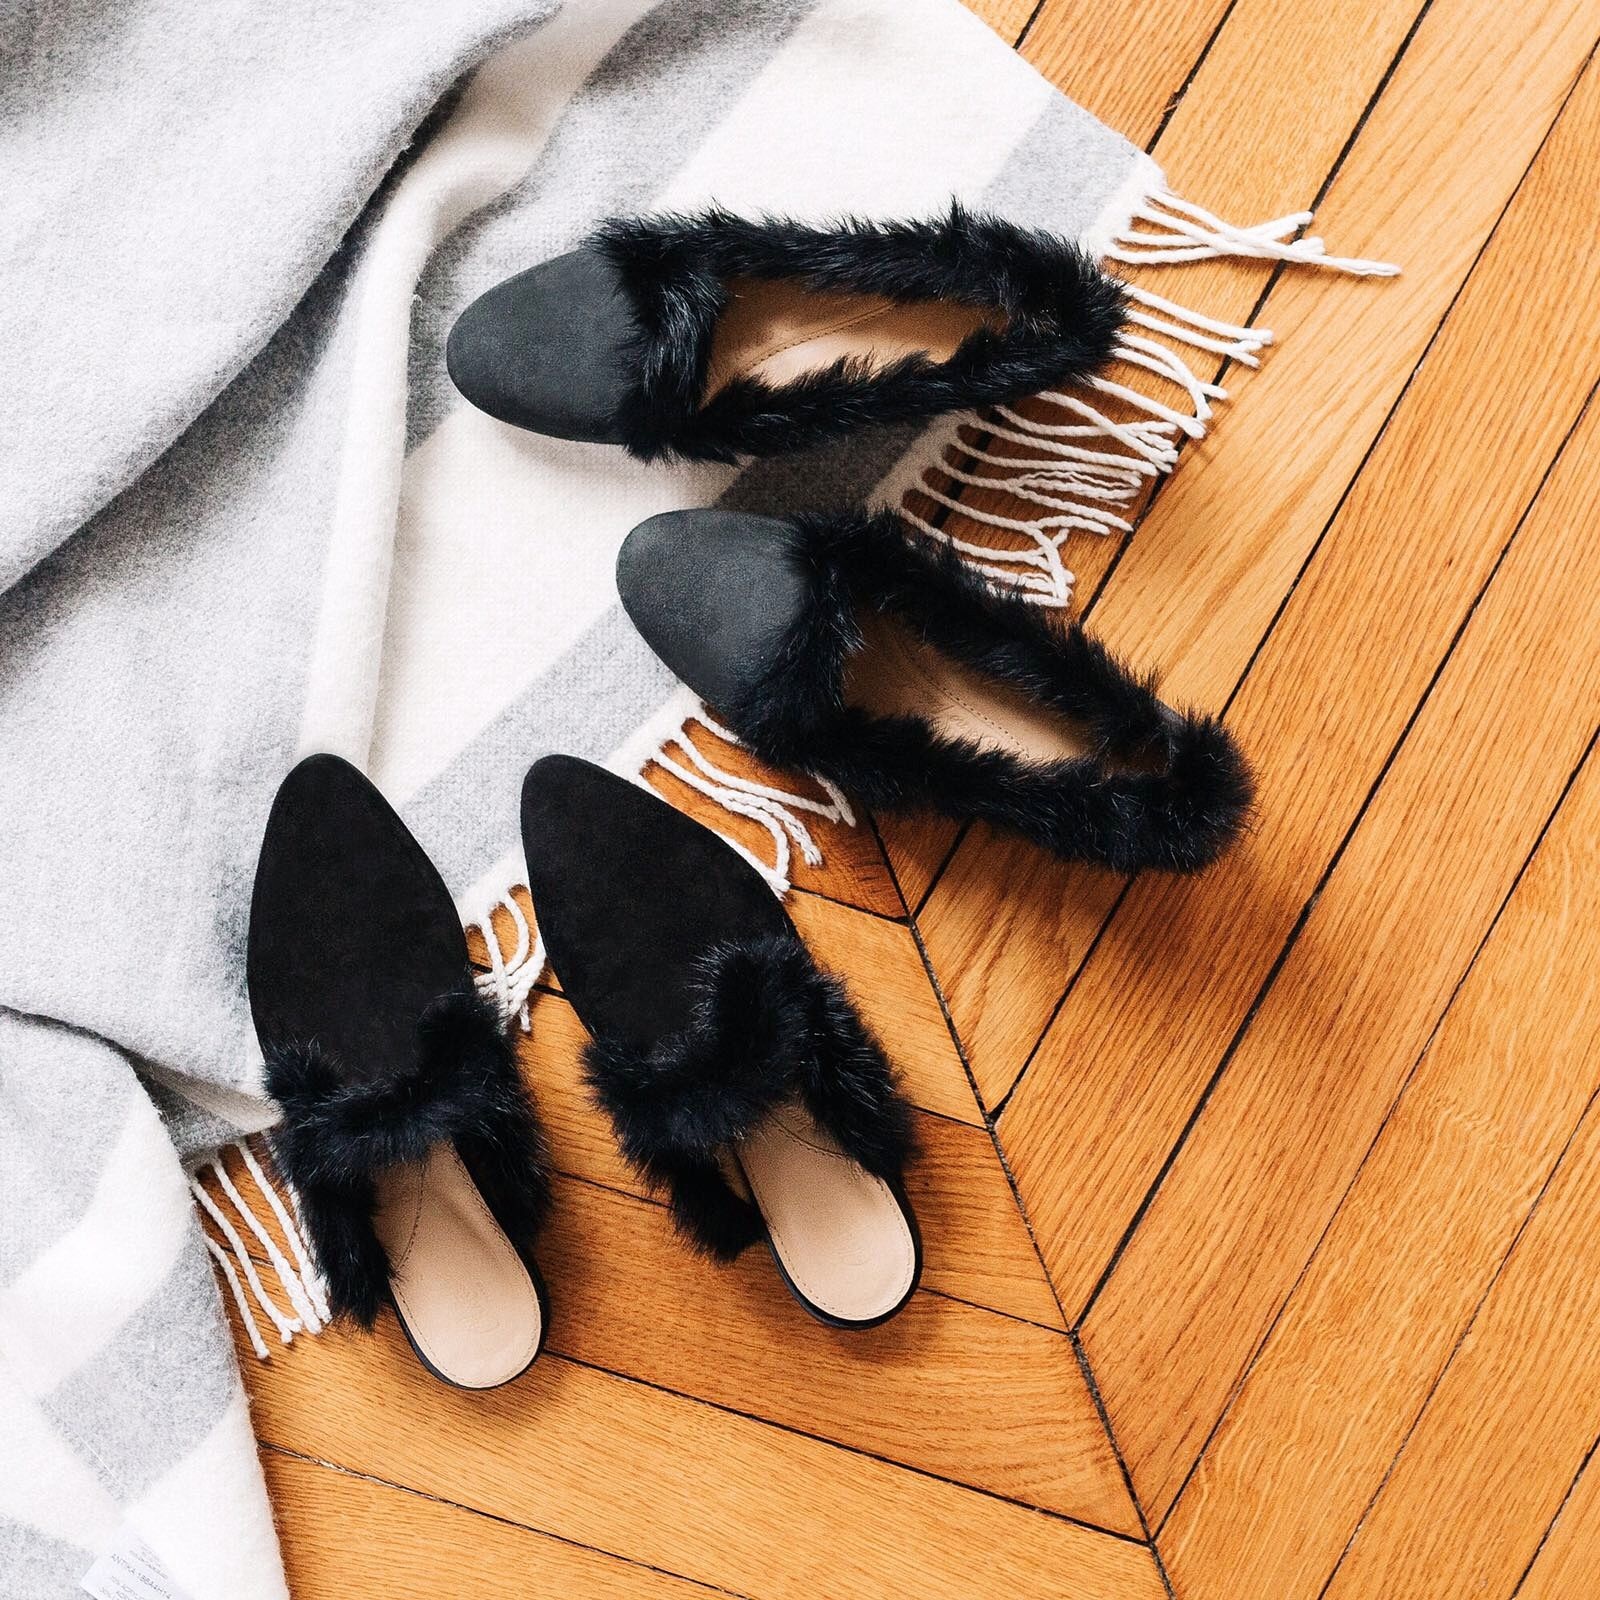 https://www.mychatelles.com/en/collection/new-arrivals  Cosy and rich black fur with suede for a cold Autumn day! ❄️☕️🍂 #CosyTime #ShineInFlats #EffortlessChic #NewStyles